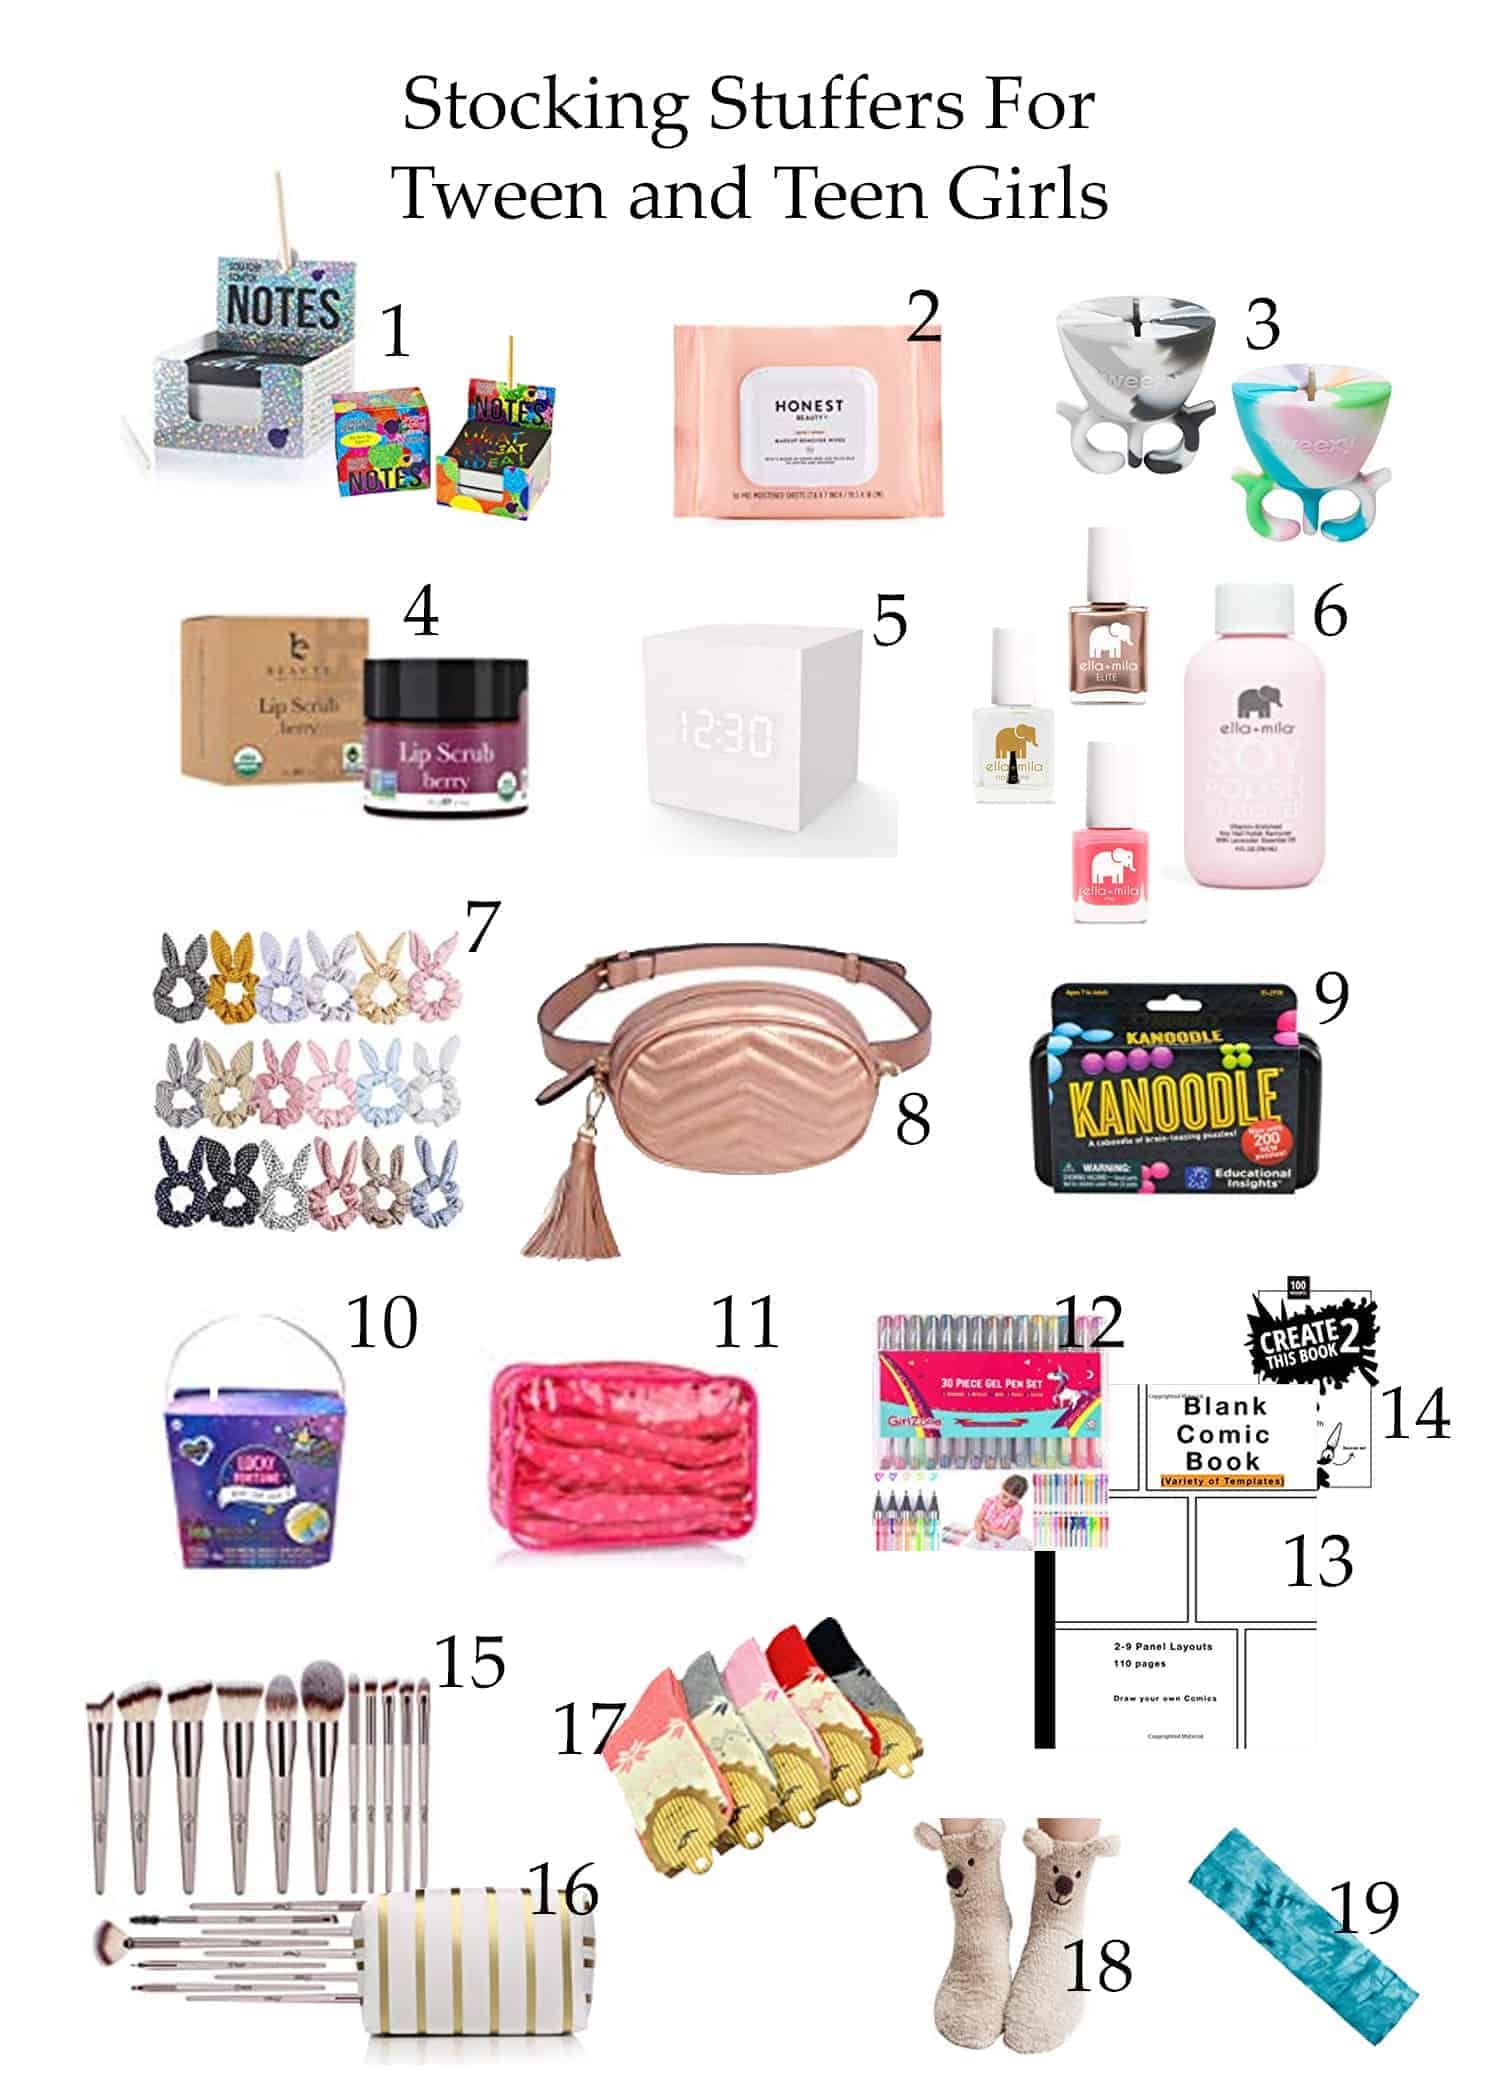 Stocking Stuffers for Tween and Teen Girls